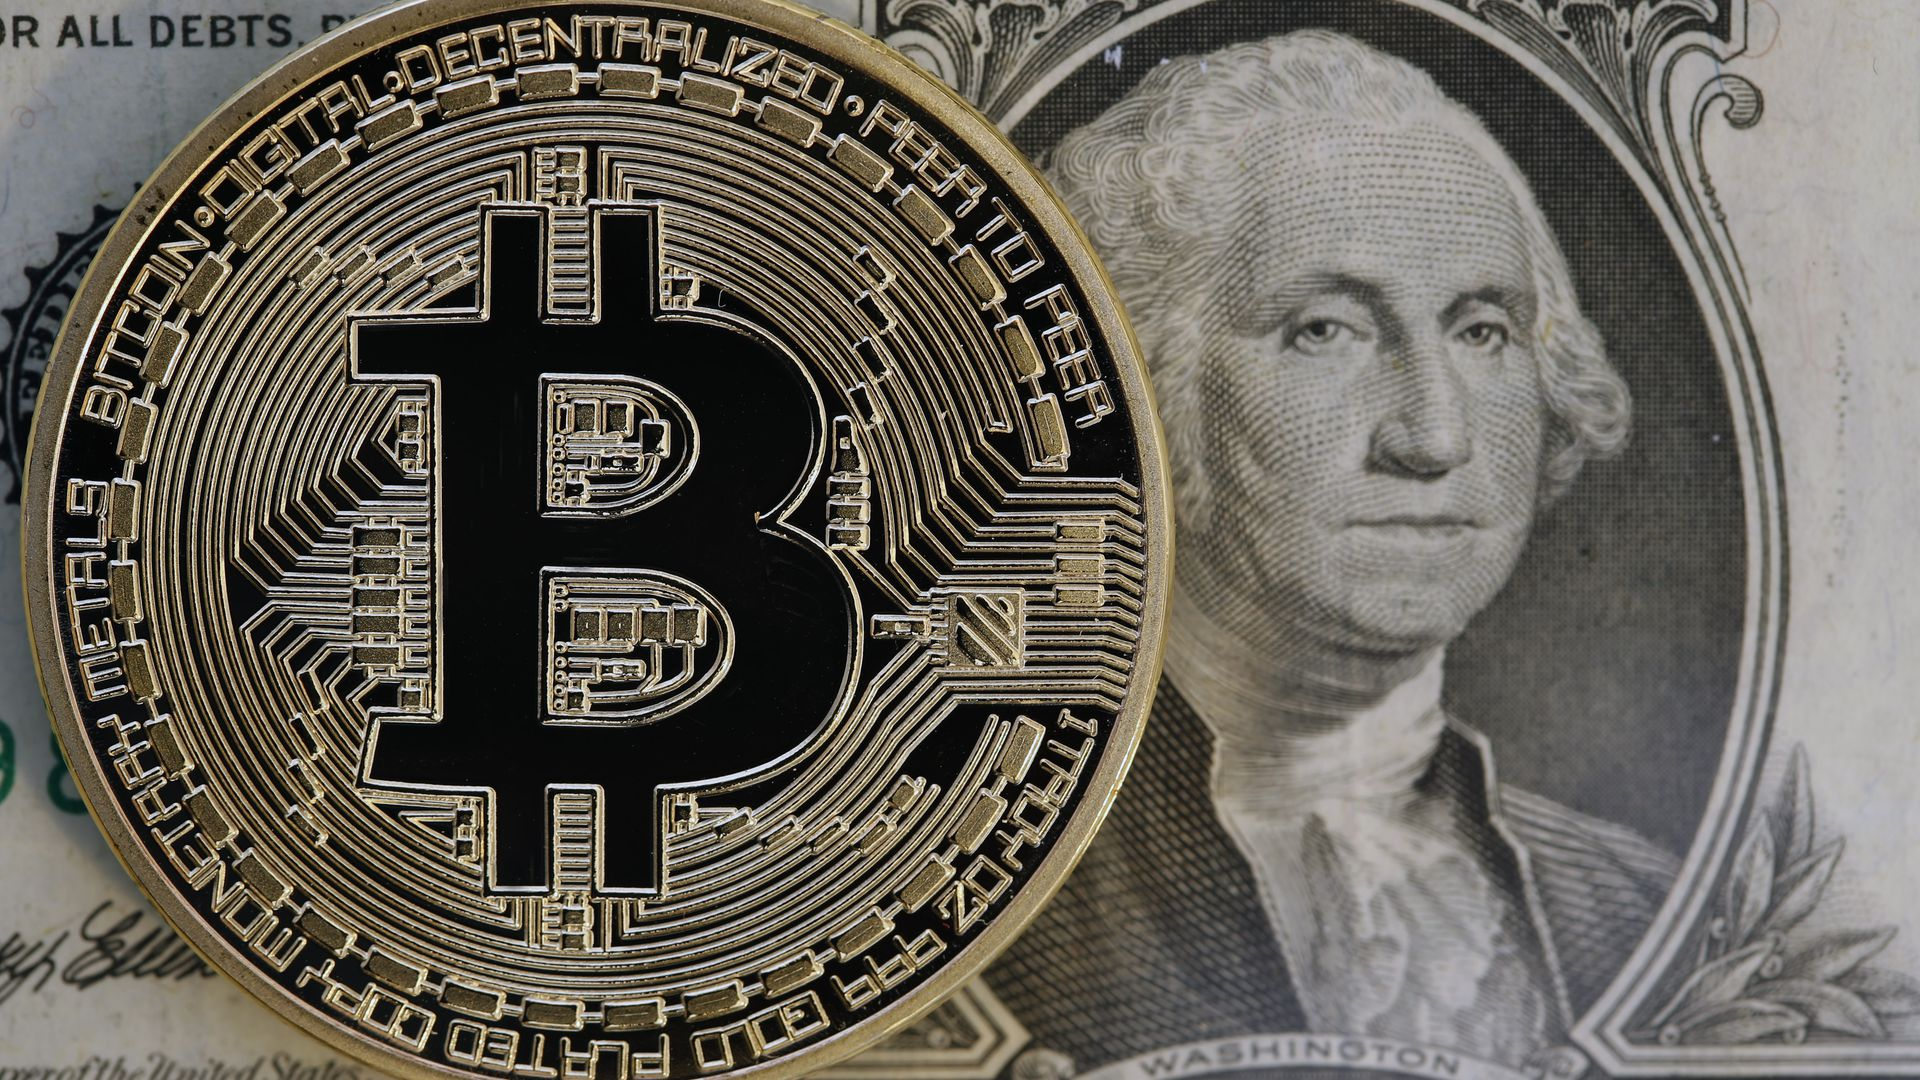 Bitcoin and a dollar bill